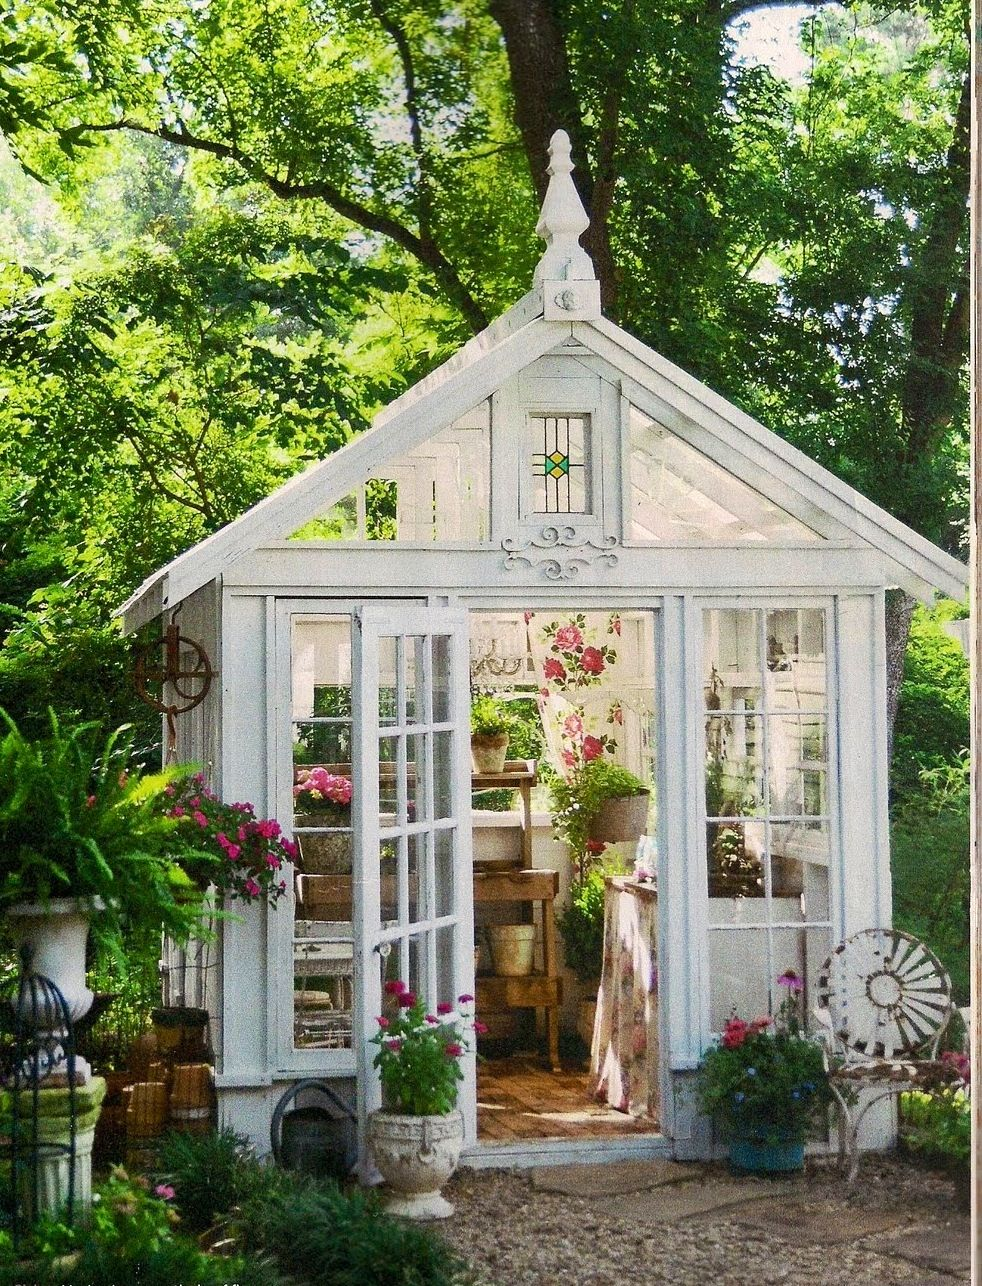 pin by handy kitty on cosy pinterest gardens green houses and